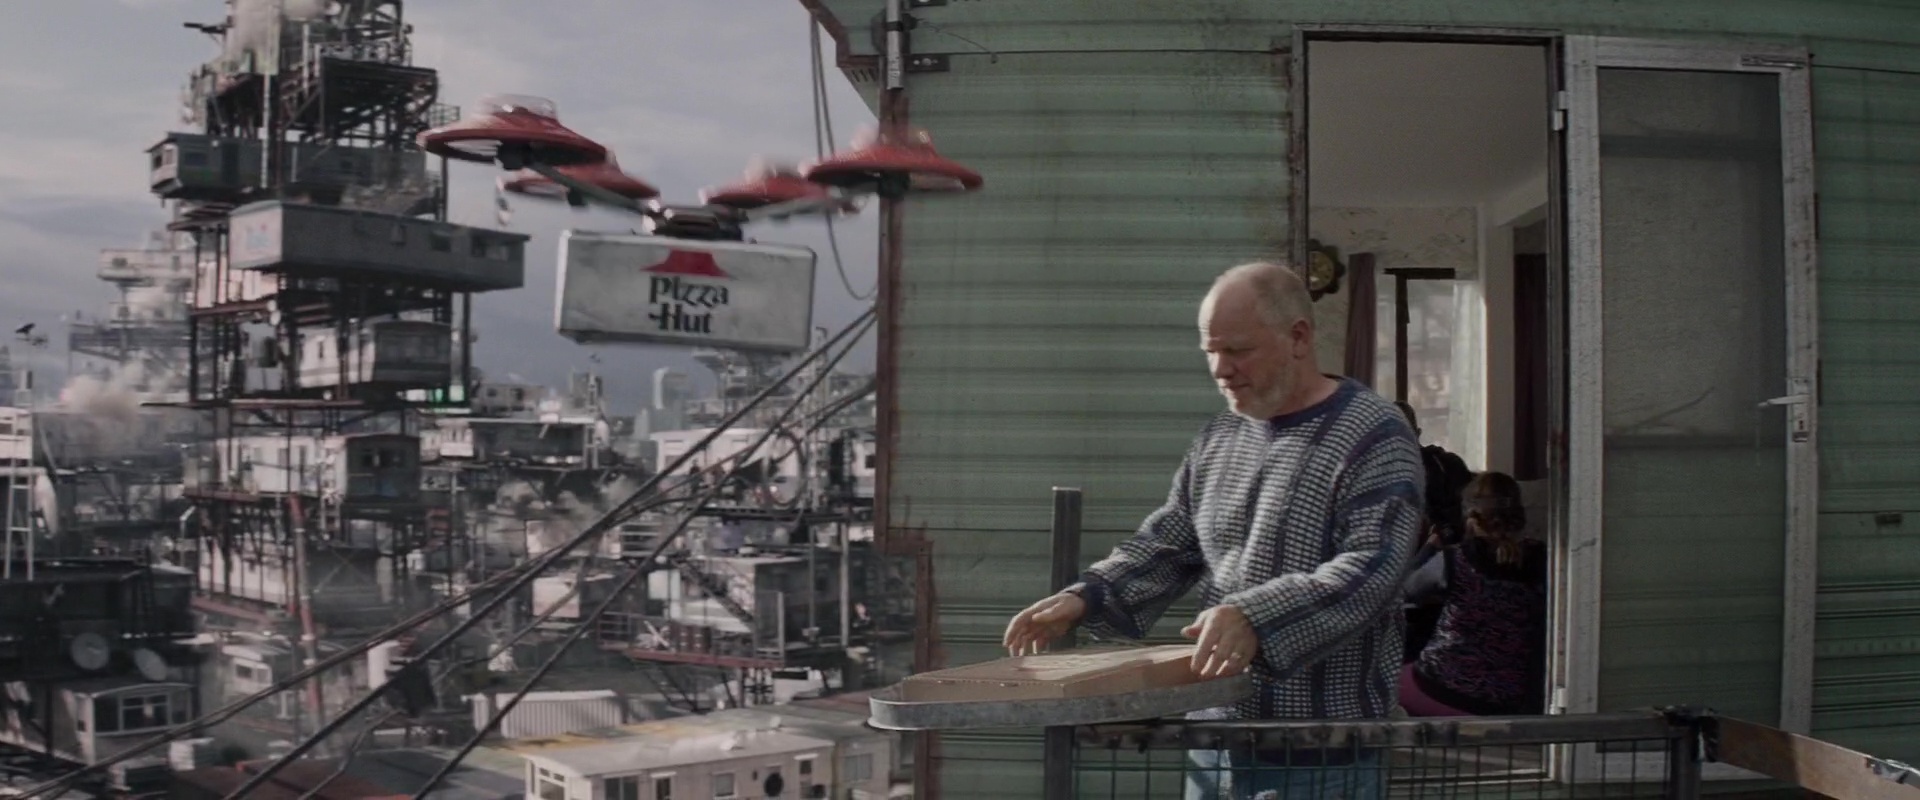 Pizza Hut Drone Delivery In Ready Player One 2018 Movie